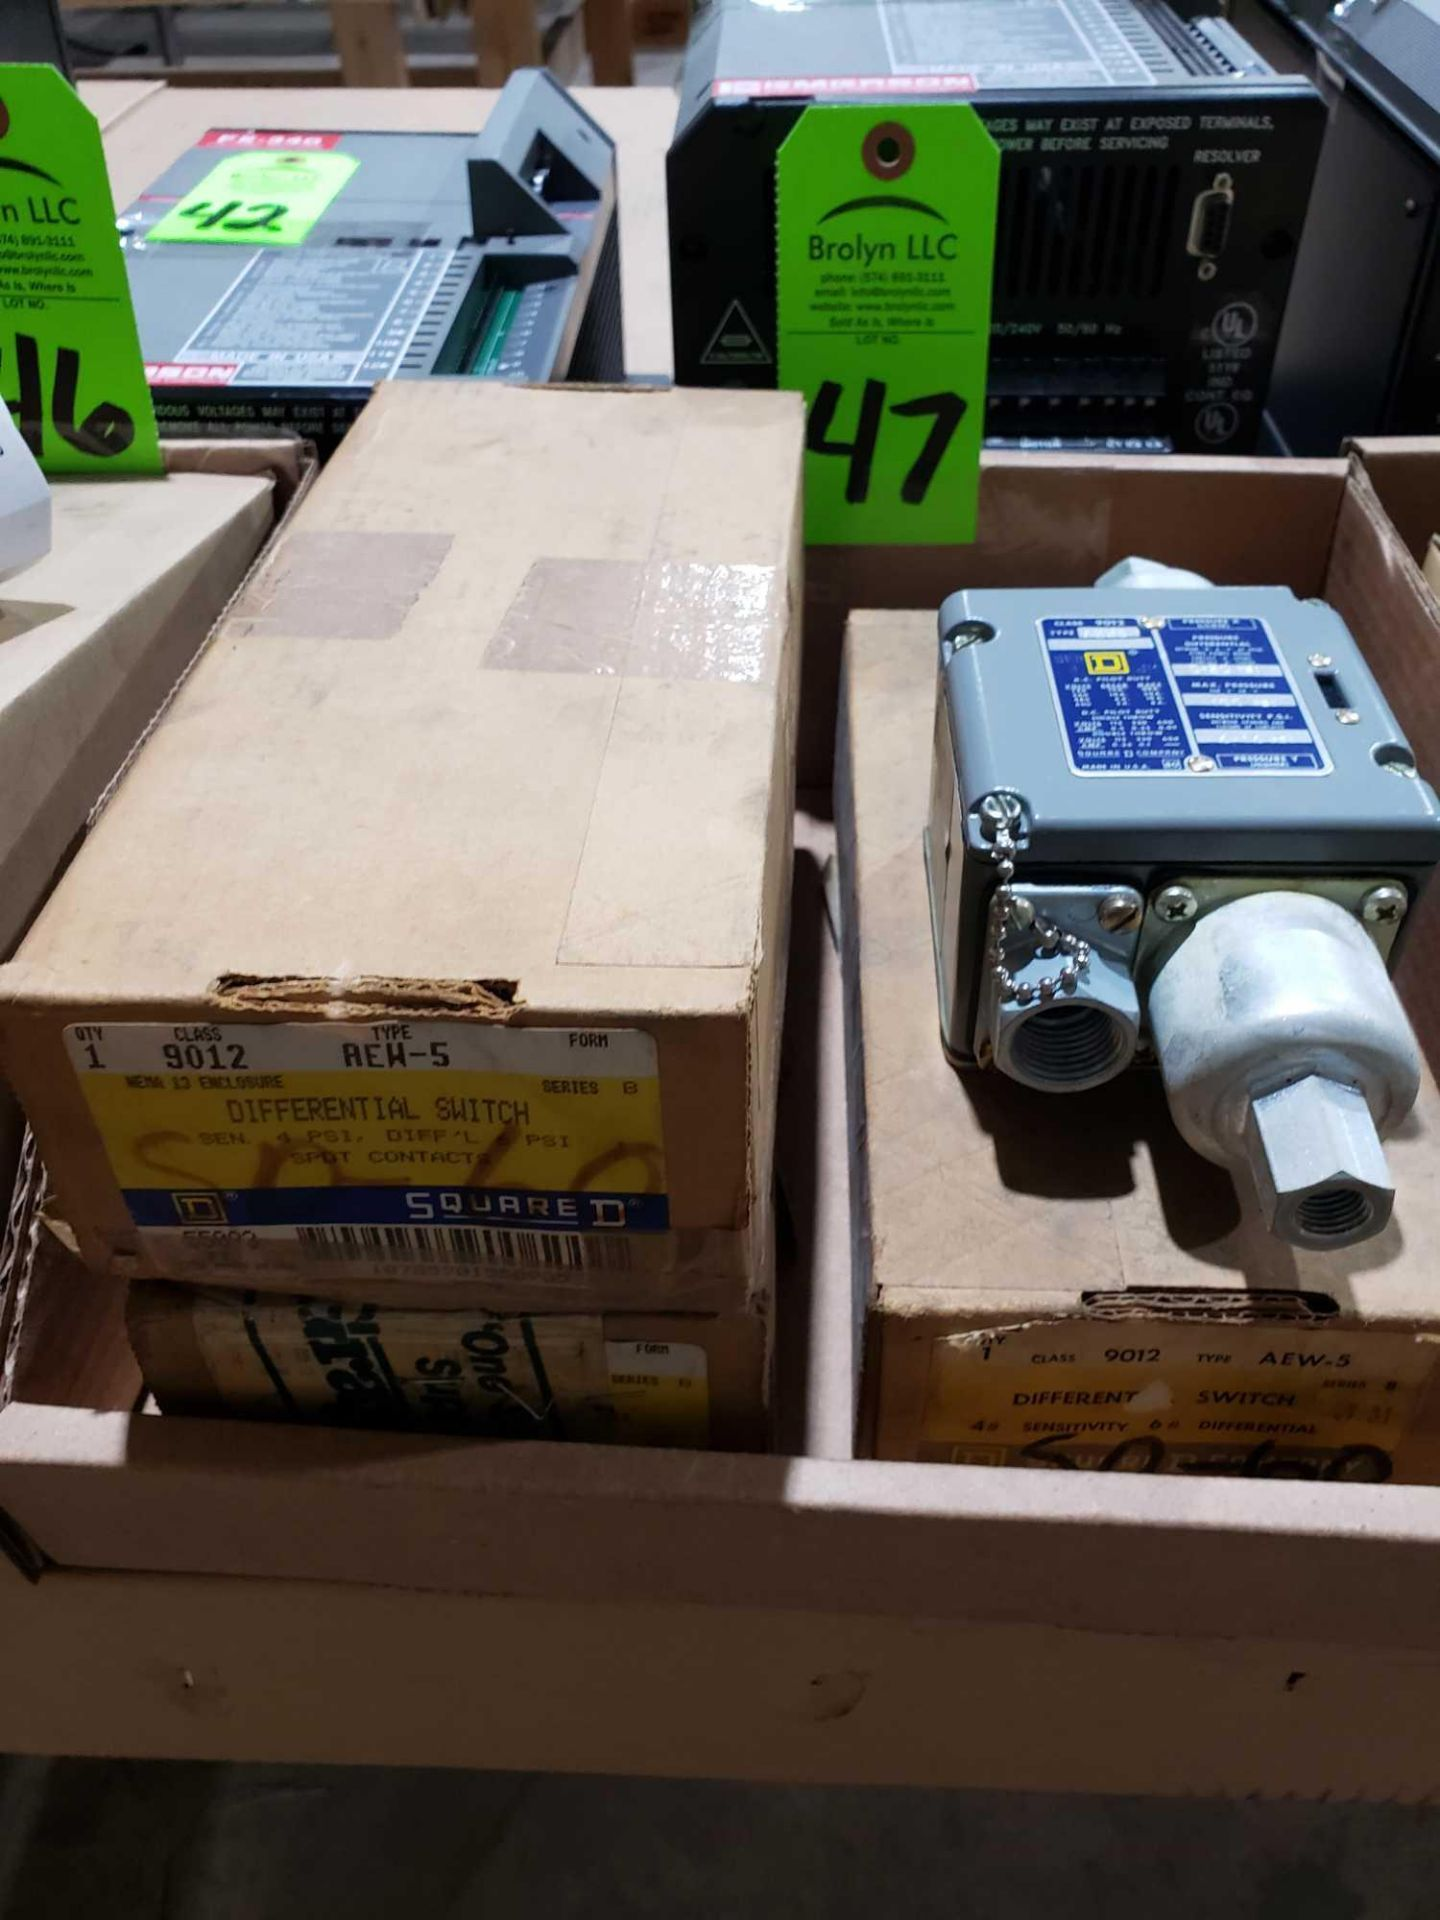 Lot 47 - Qty 3 - Square D model 9012-AEW-5 pressure switch. New in boxes.